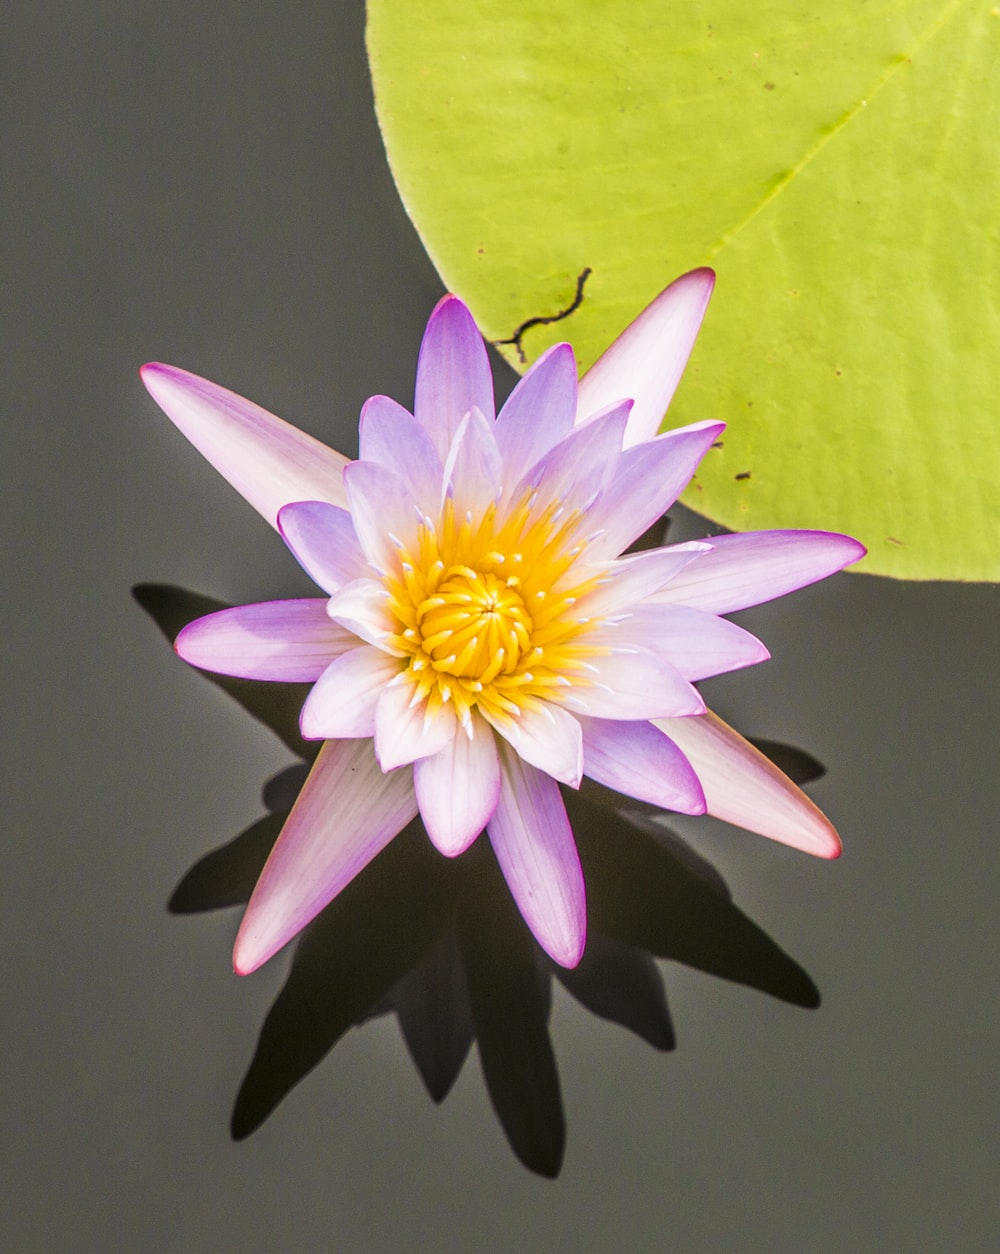 pink and yellowlotus flower in pond